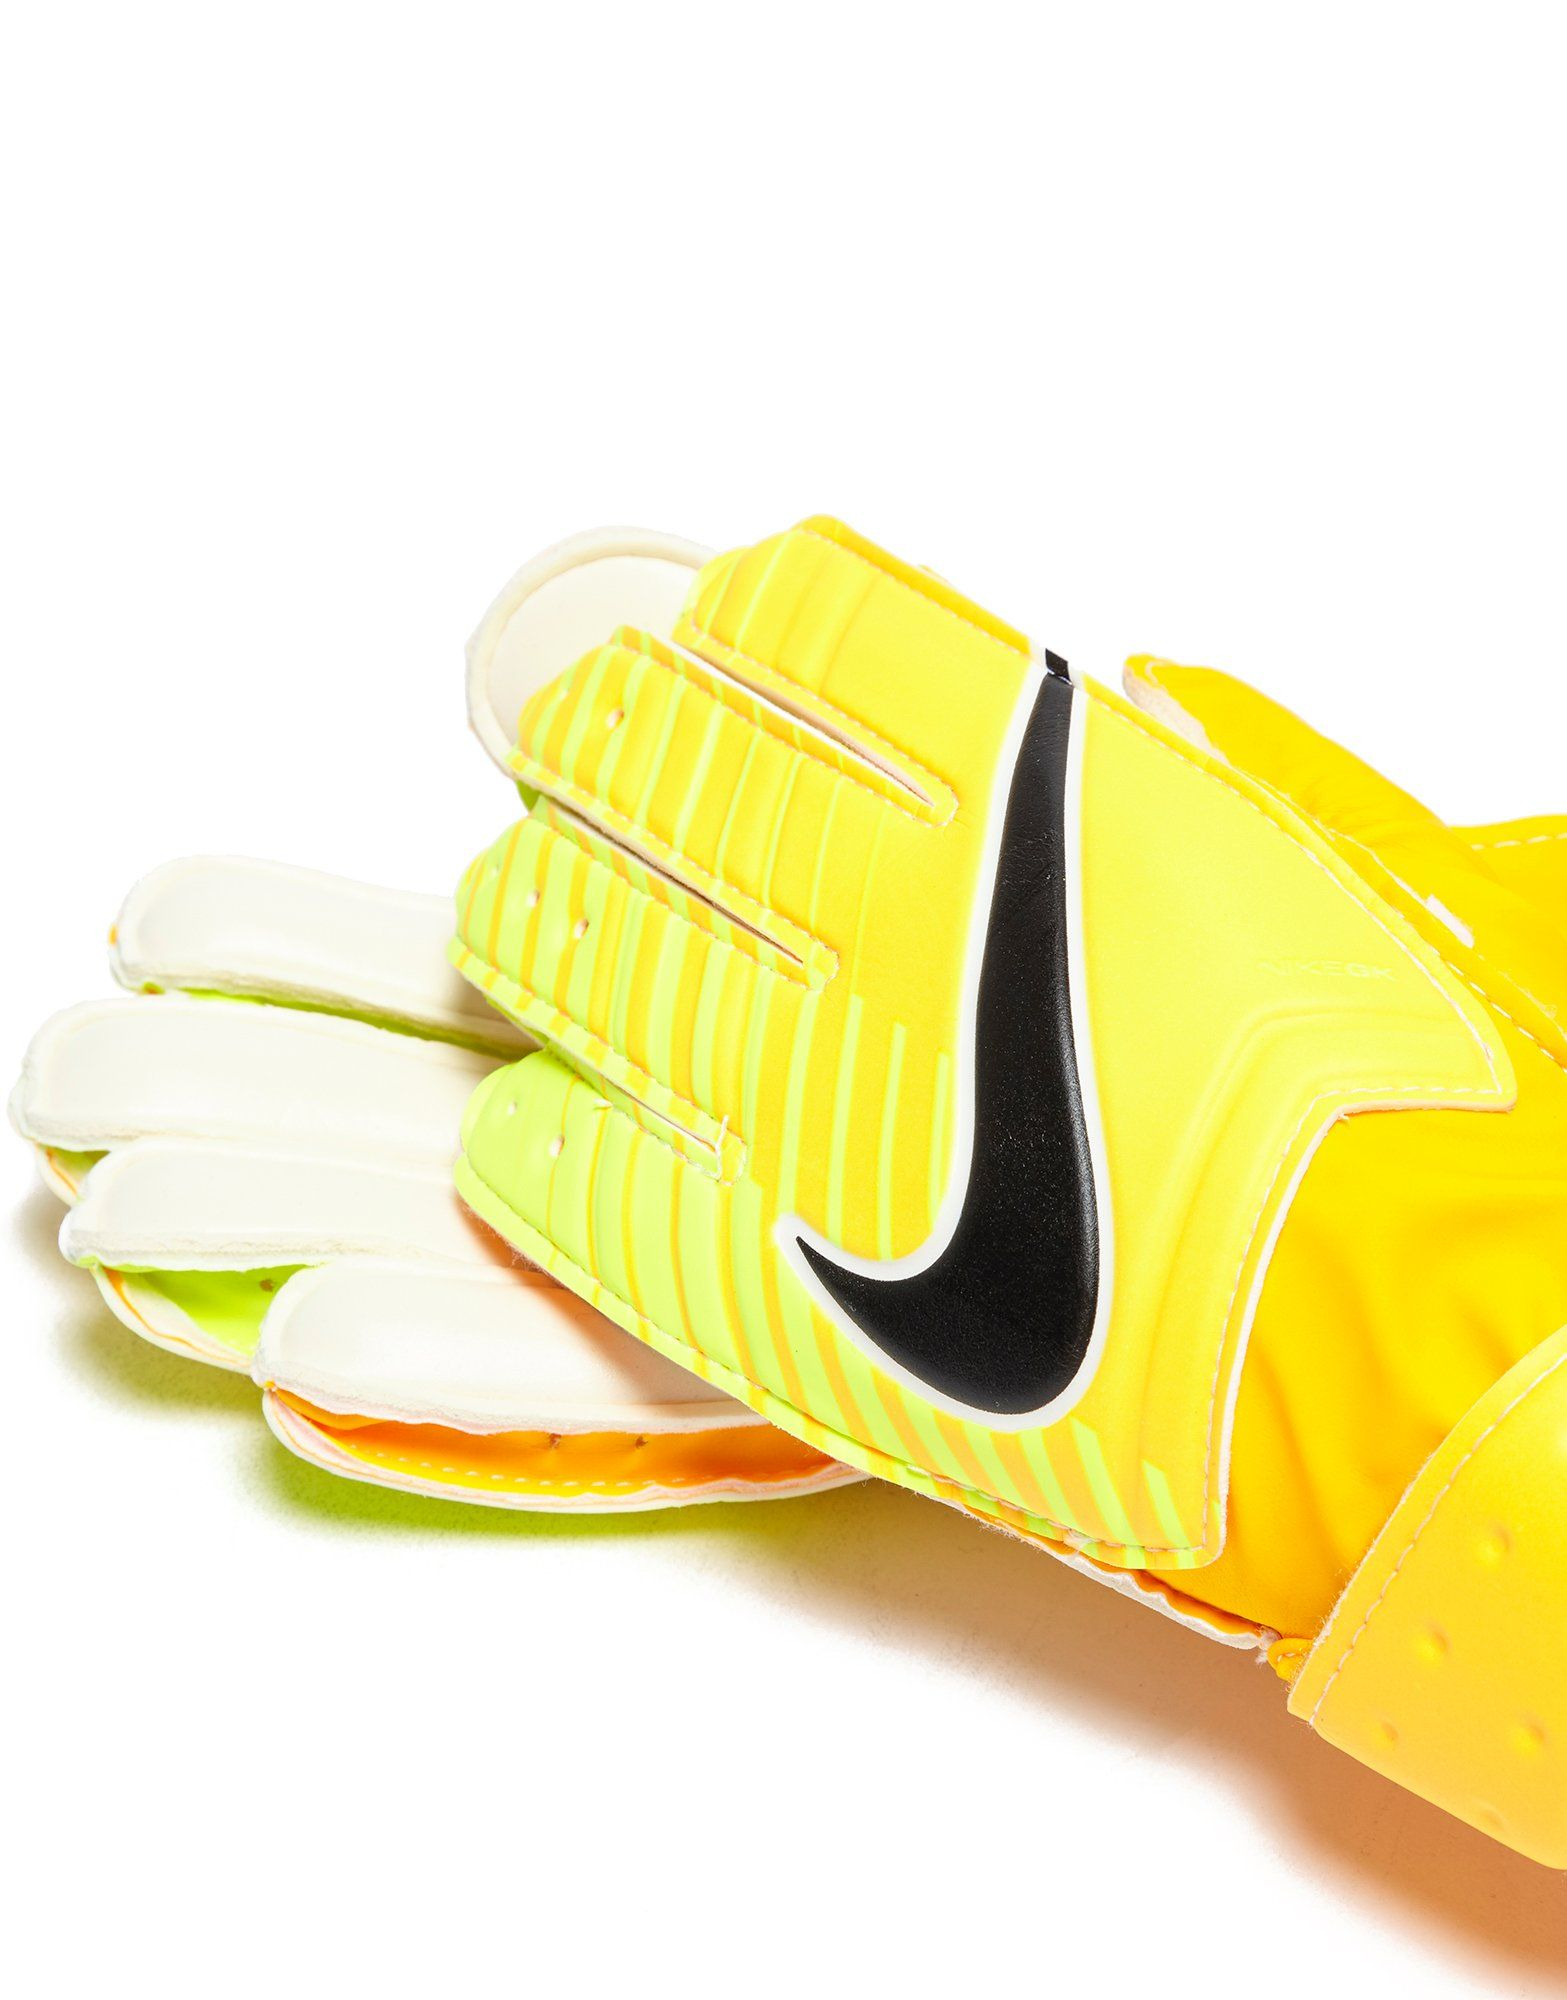 nike junior match size 4 goalkeeper gloves Sizejunior 4-8 soccer glove sizing guide sizingtrue to size finger protection none removableno best for:training recommended playing surfacefirm.